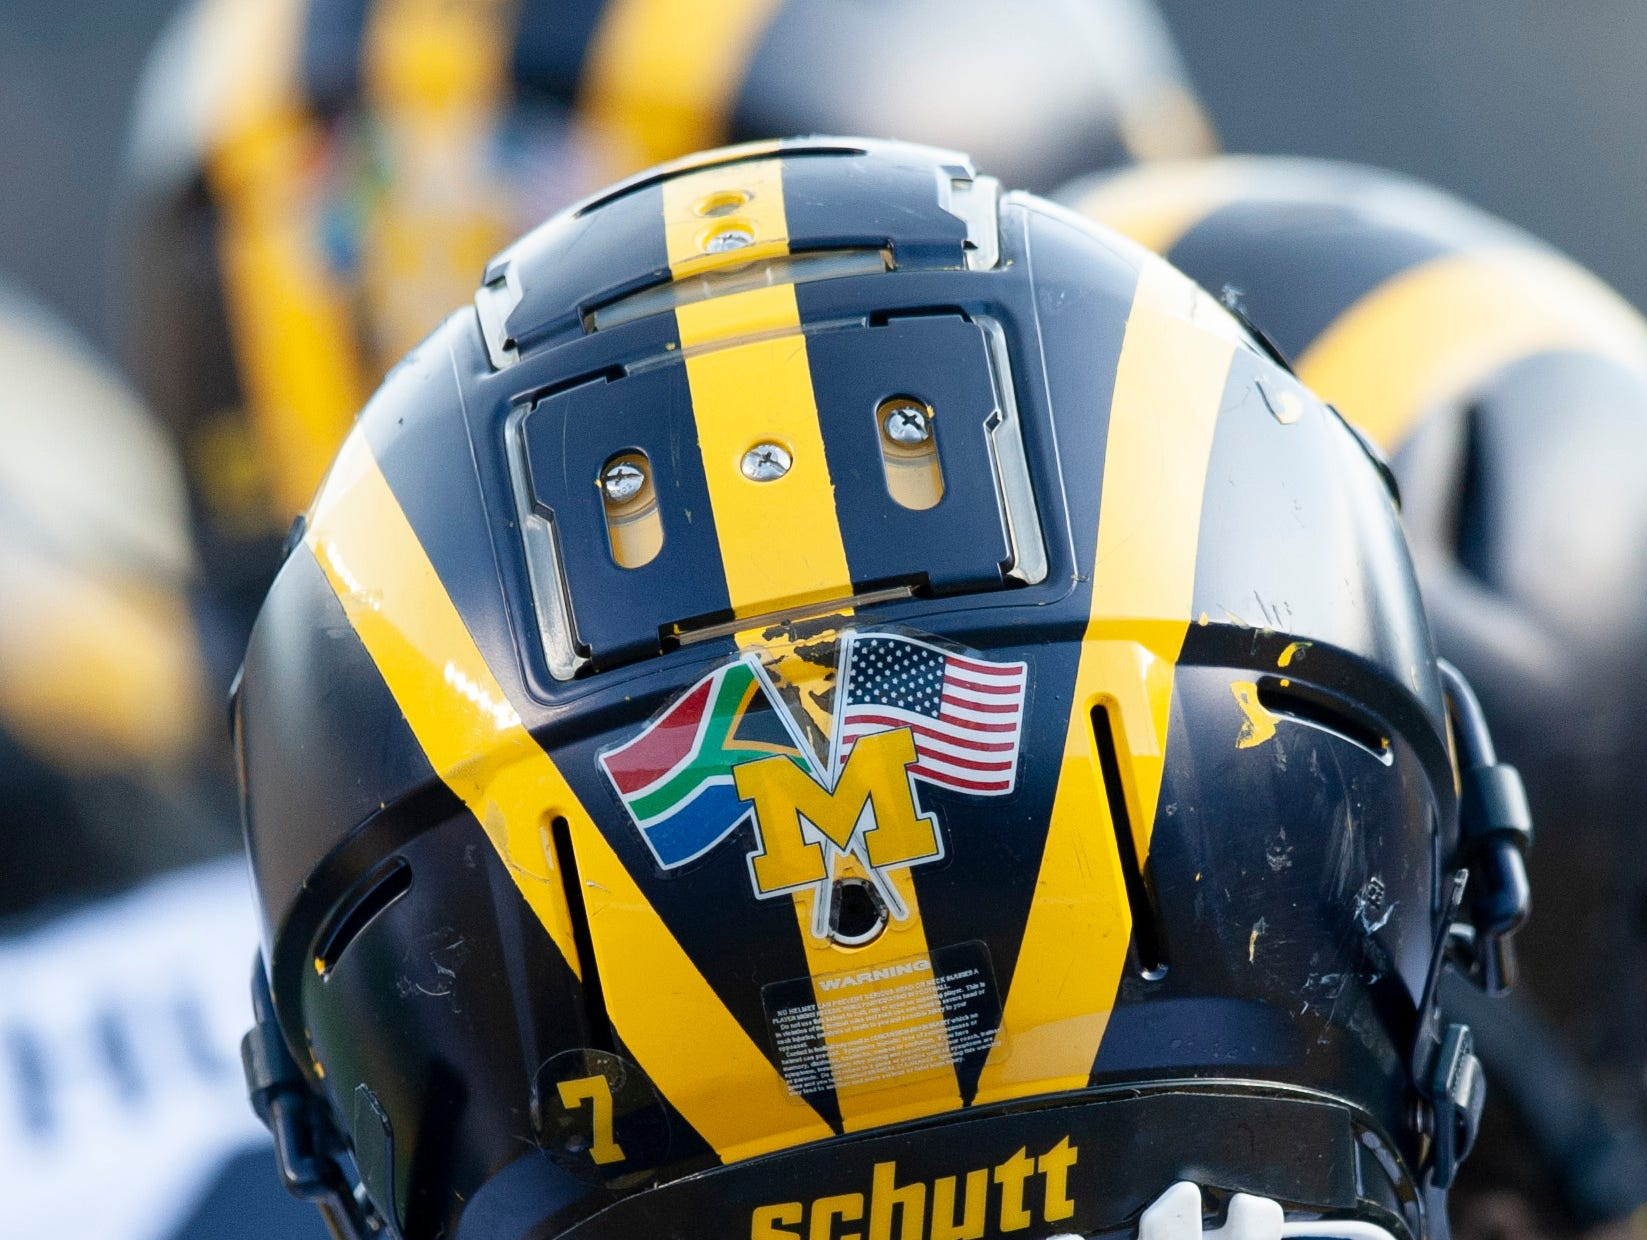 The South African flag and the American flag on the back of the players' helmets, like this one worn by LB Khaleke Hudson, is in honor of the summer trip the team will take to South Africa.